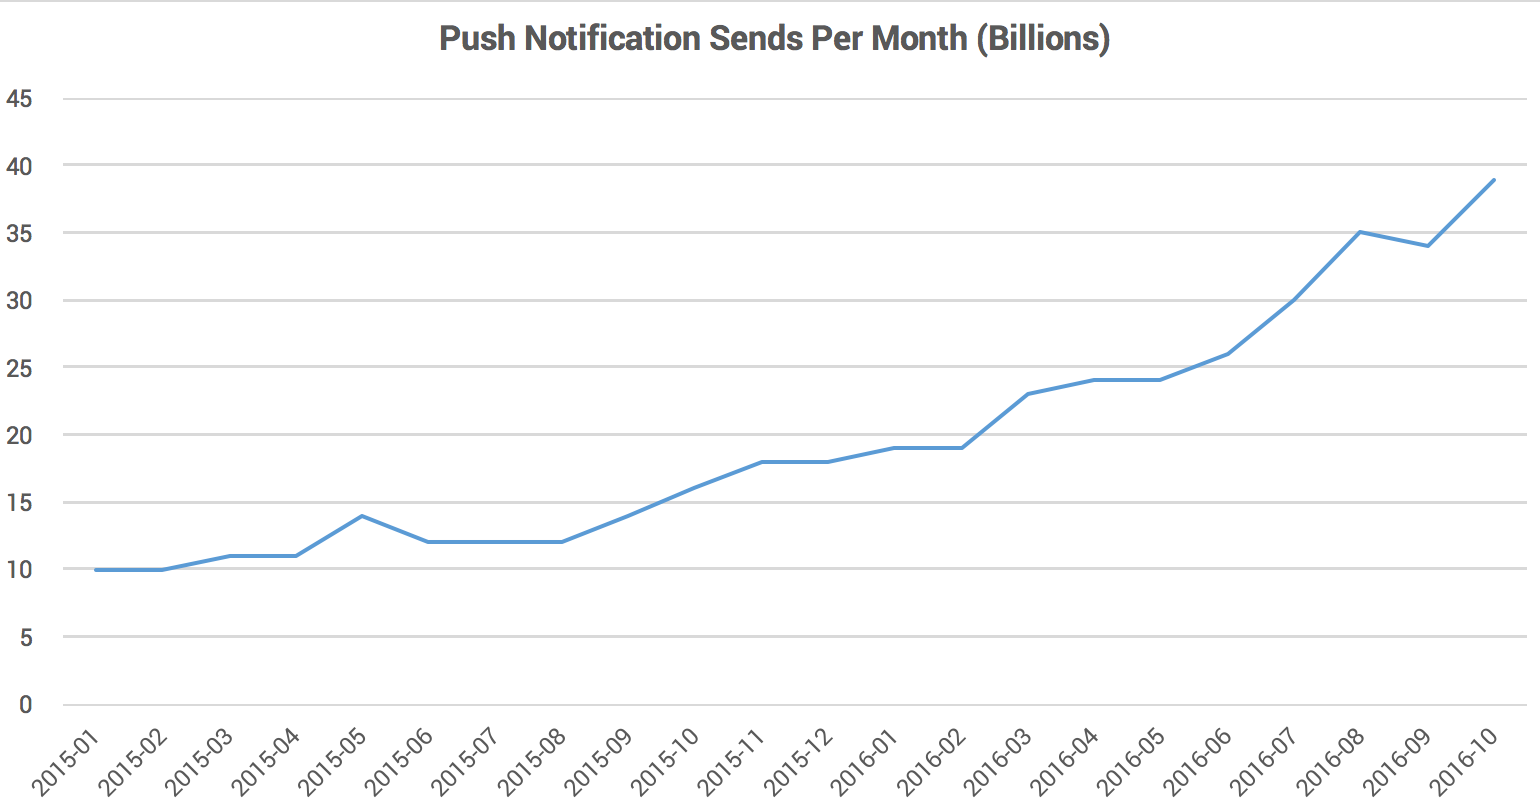 push-notification-sends-per-month-billions-urban-airship-graphic